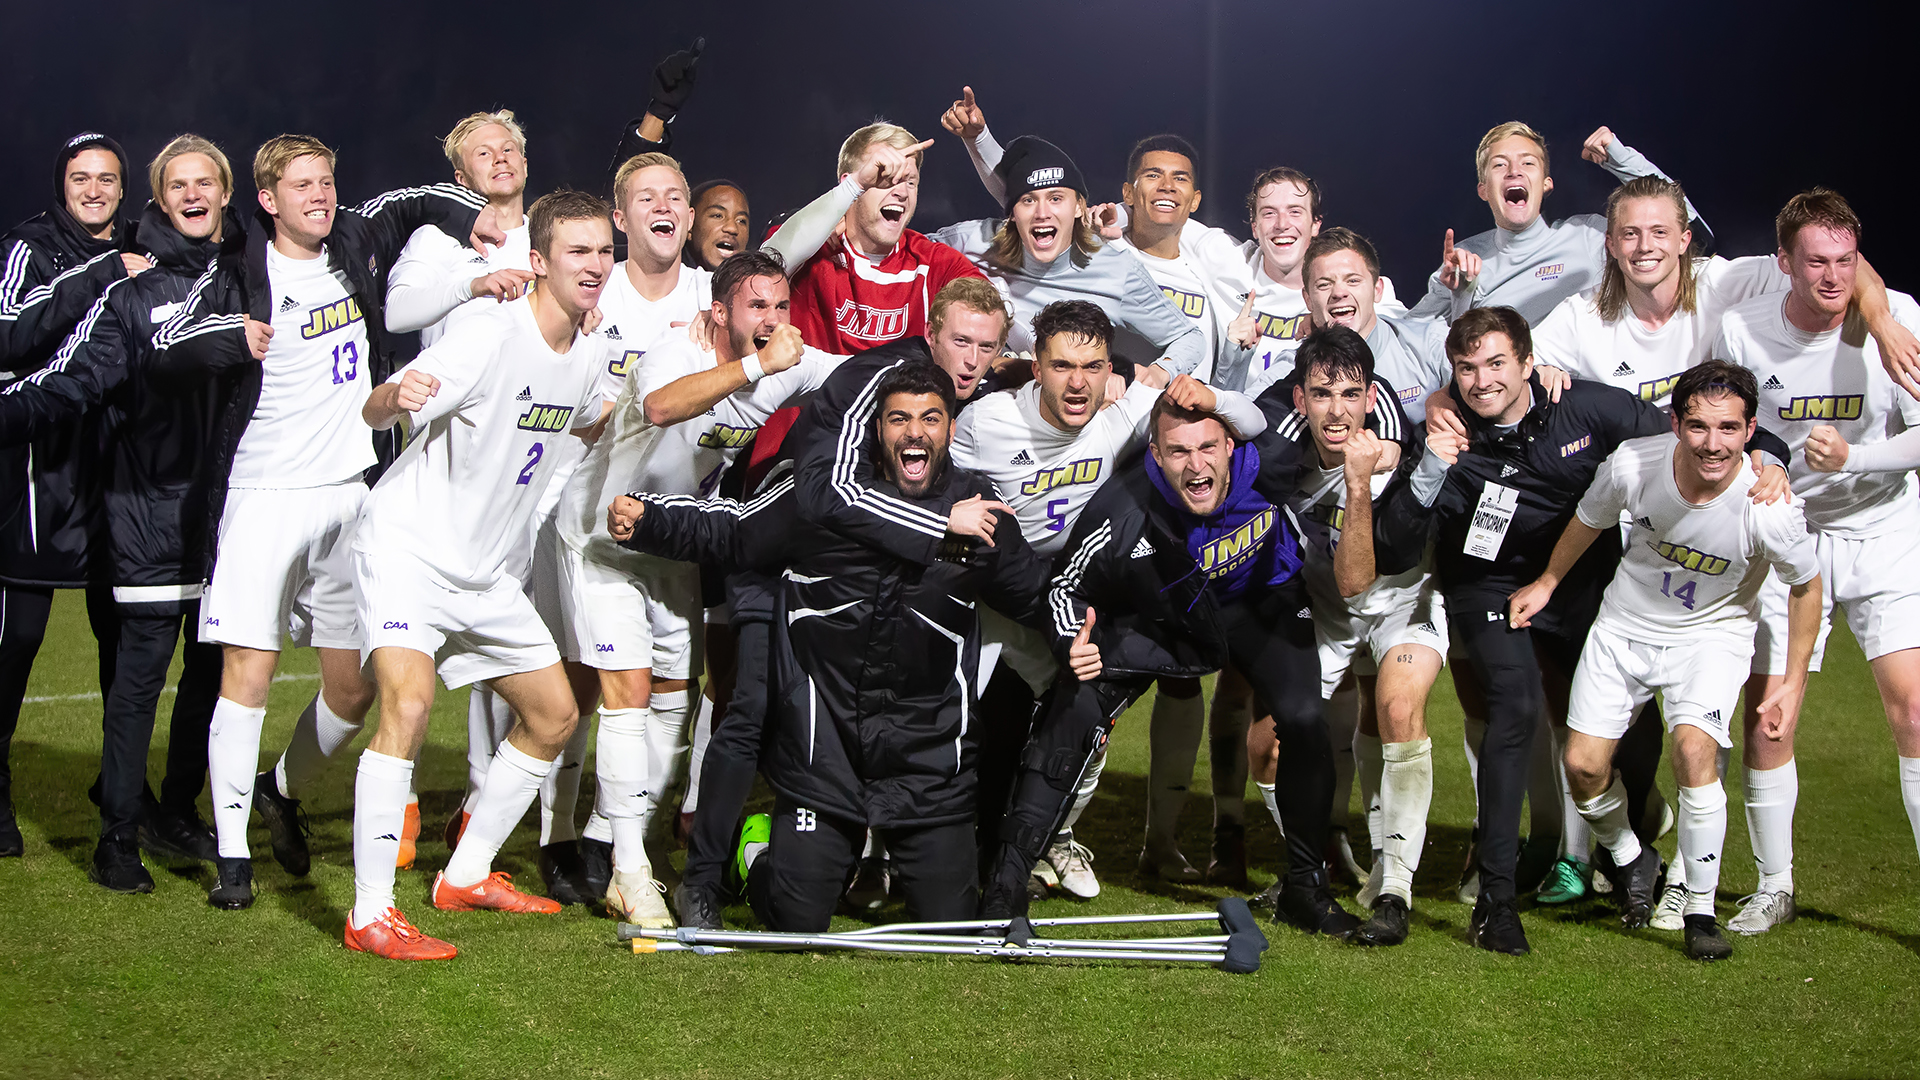 Men's Soccer: Dukes Knock Off No. 5 UNC in NCAA Second Round